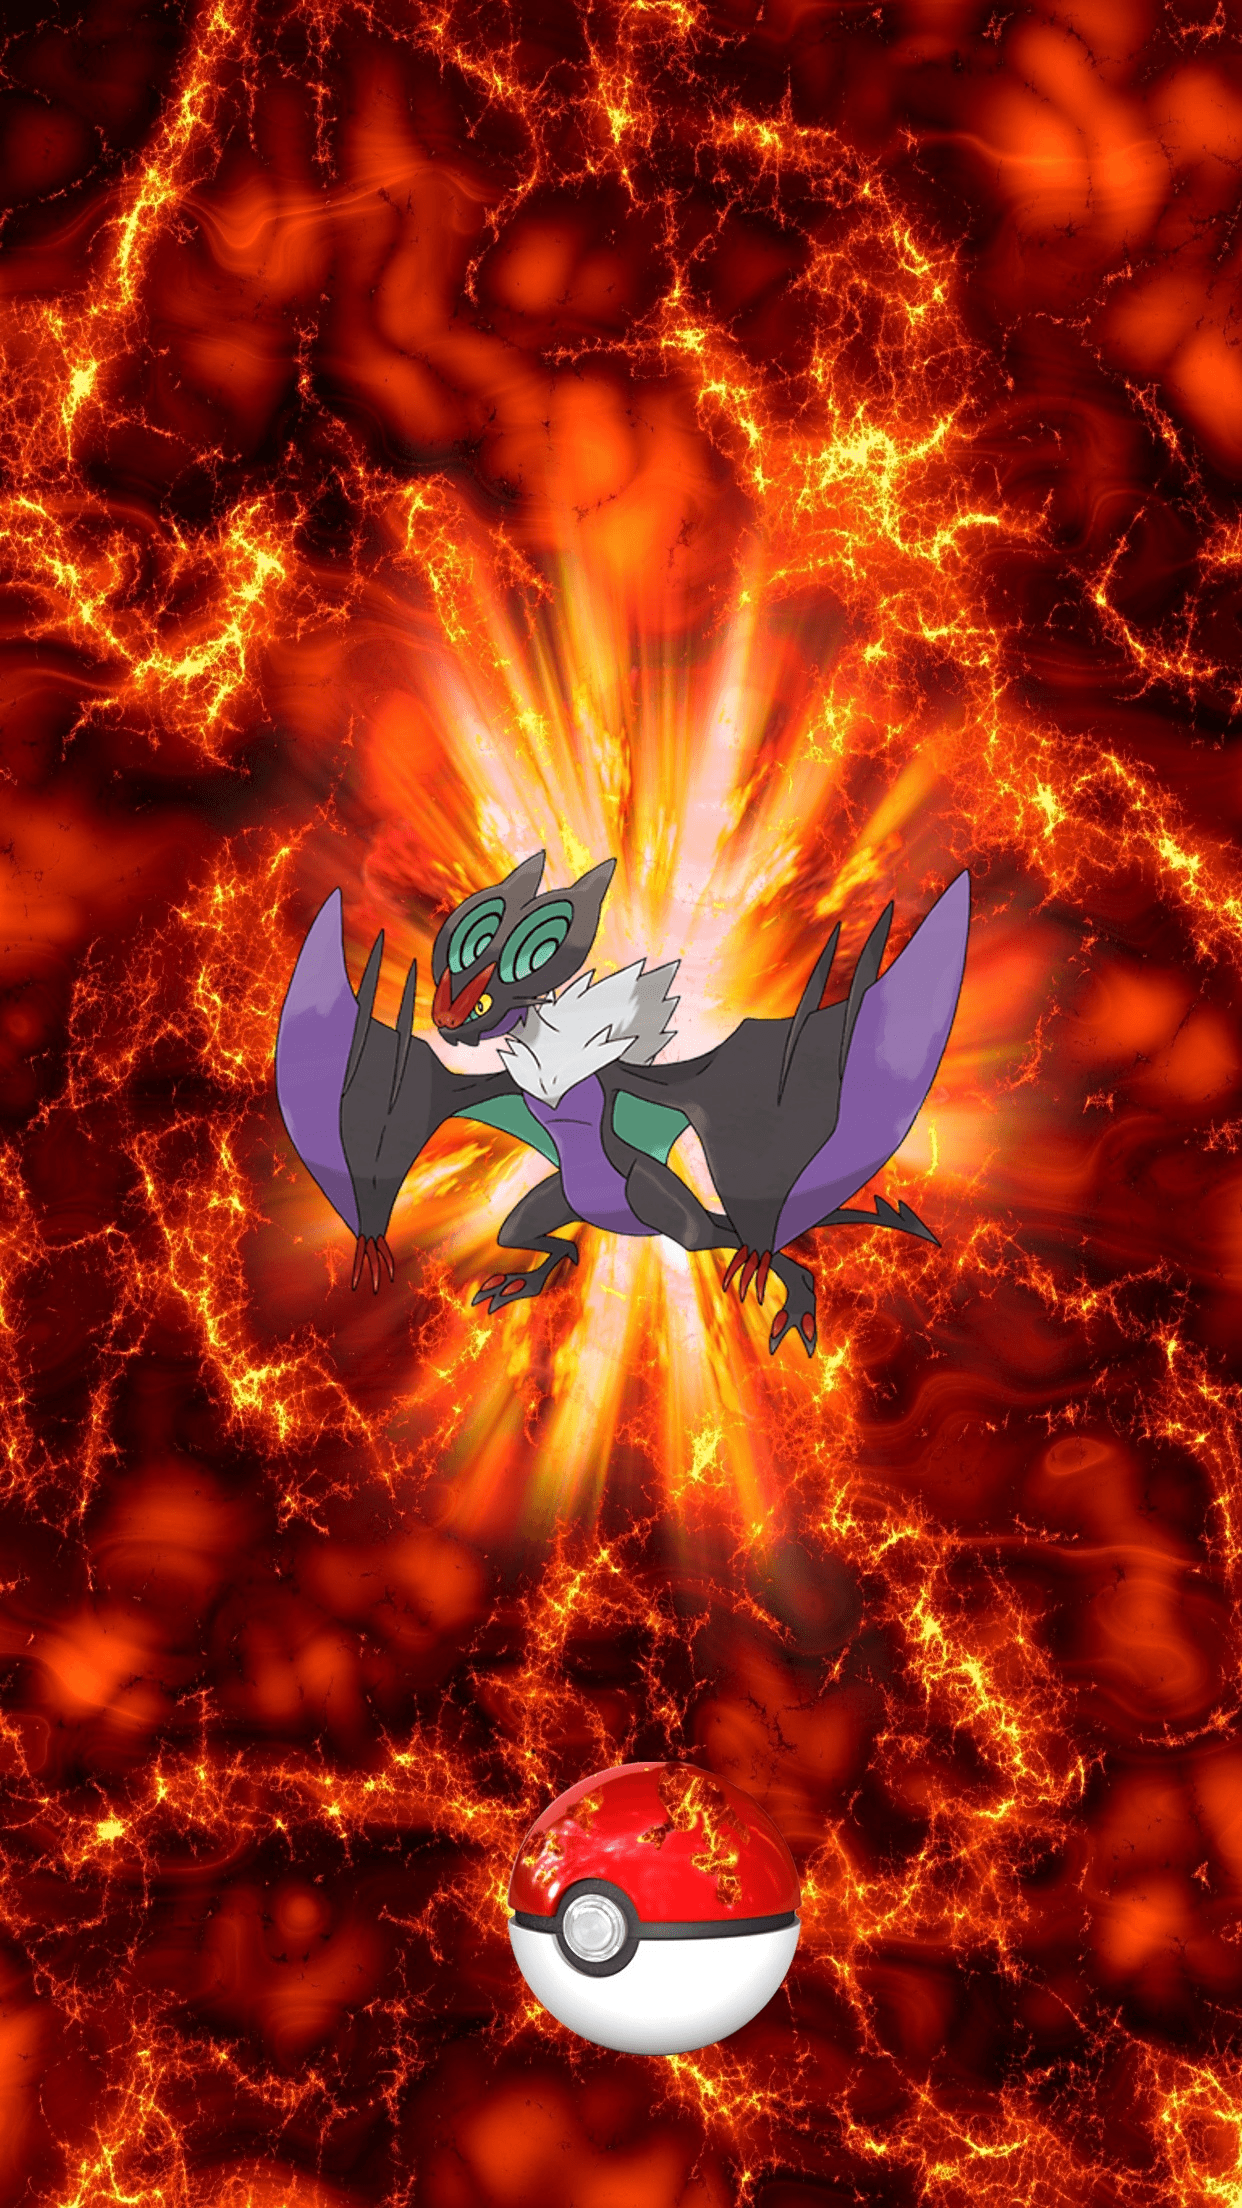 715 Noivern 142 Onvern 167 Noibat | Wallpaper